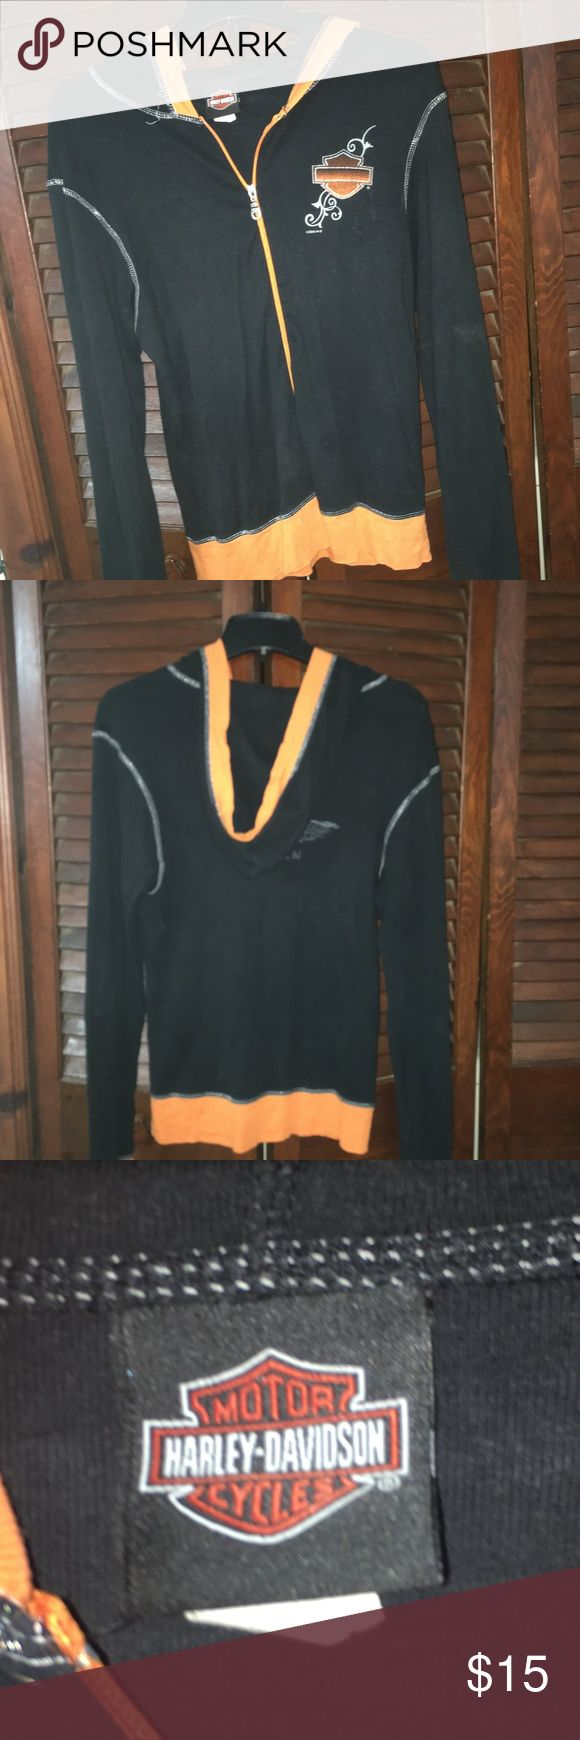 Harley Davidson Zip up Shirt Size Medium This  shirt is in good used condition.  No rips or stains.  Looks cute with an orange tank underneath it.  It is part of a 2 piece set.  It came with lounge pants that I cant find anymore. Harley Davidson Tops Sweatshirts & Hoodies